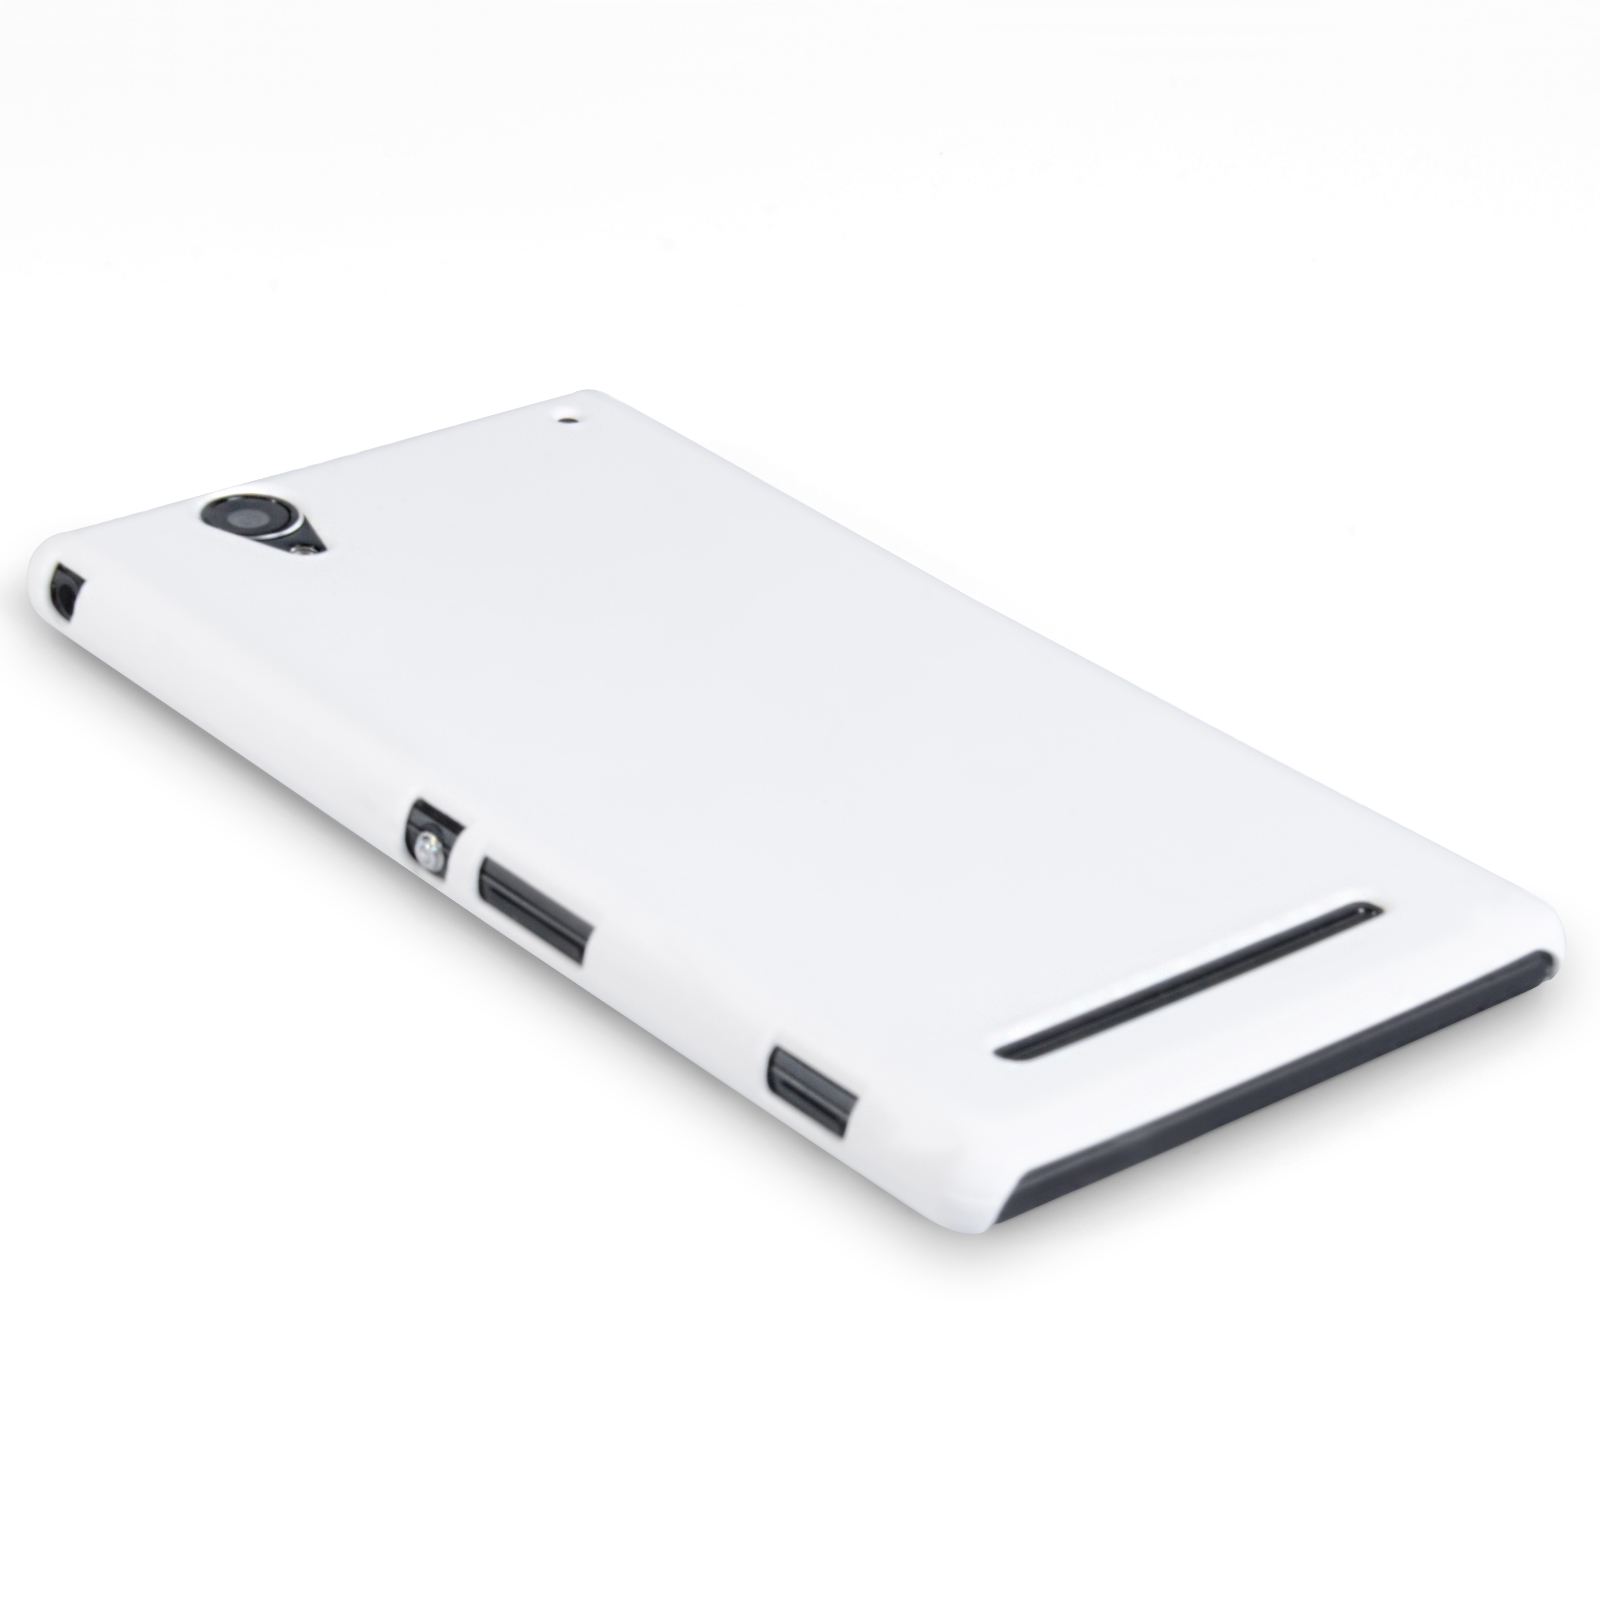 YouSave Accessories Sony Xperia T2 Ultra Hard Hybrid Case - White